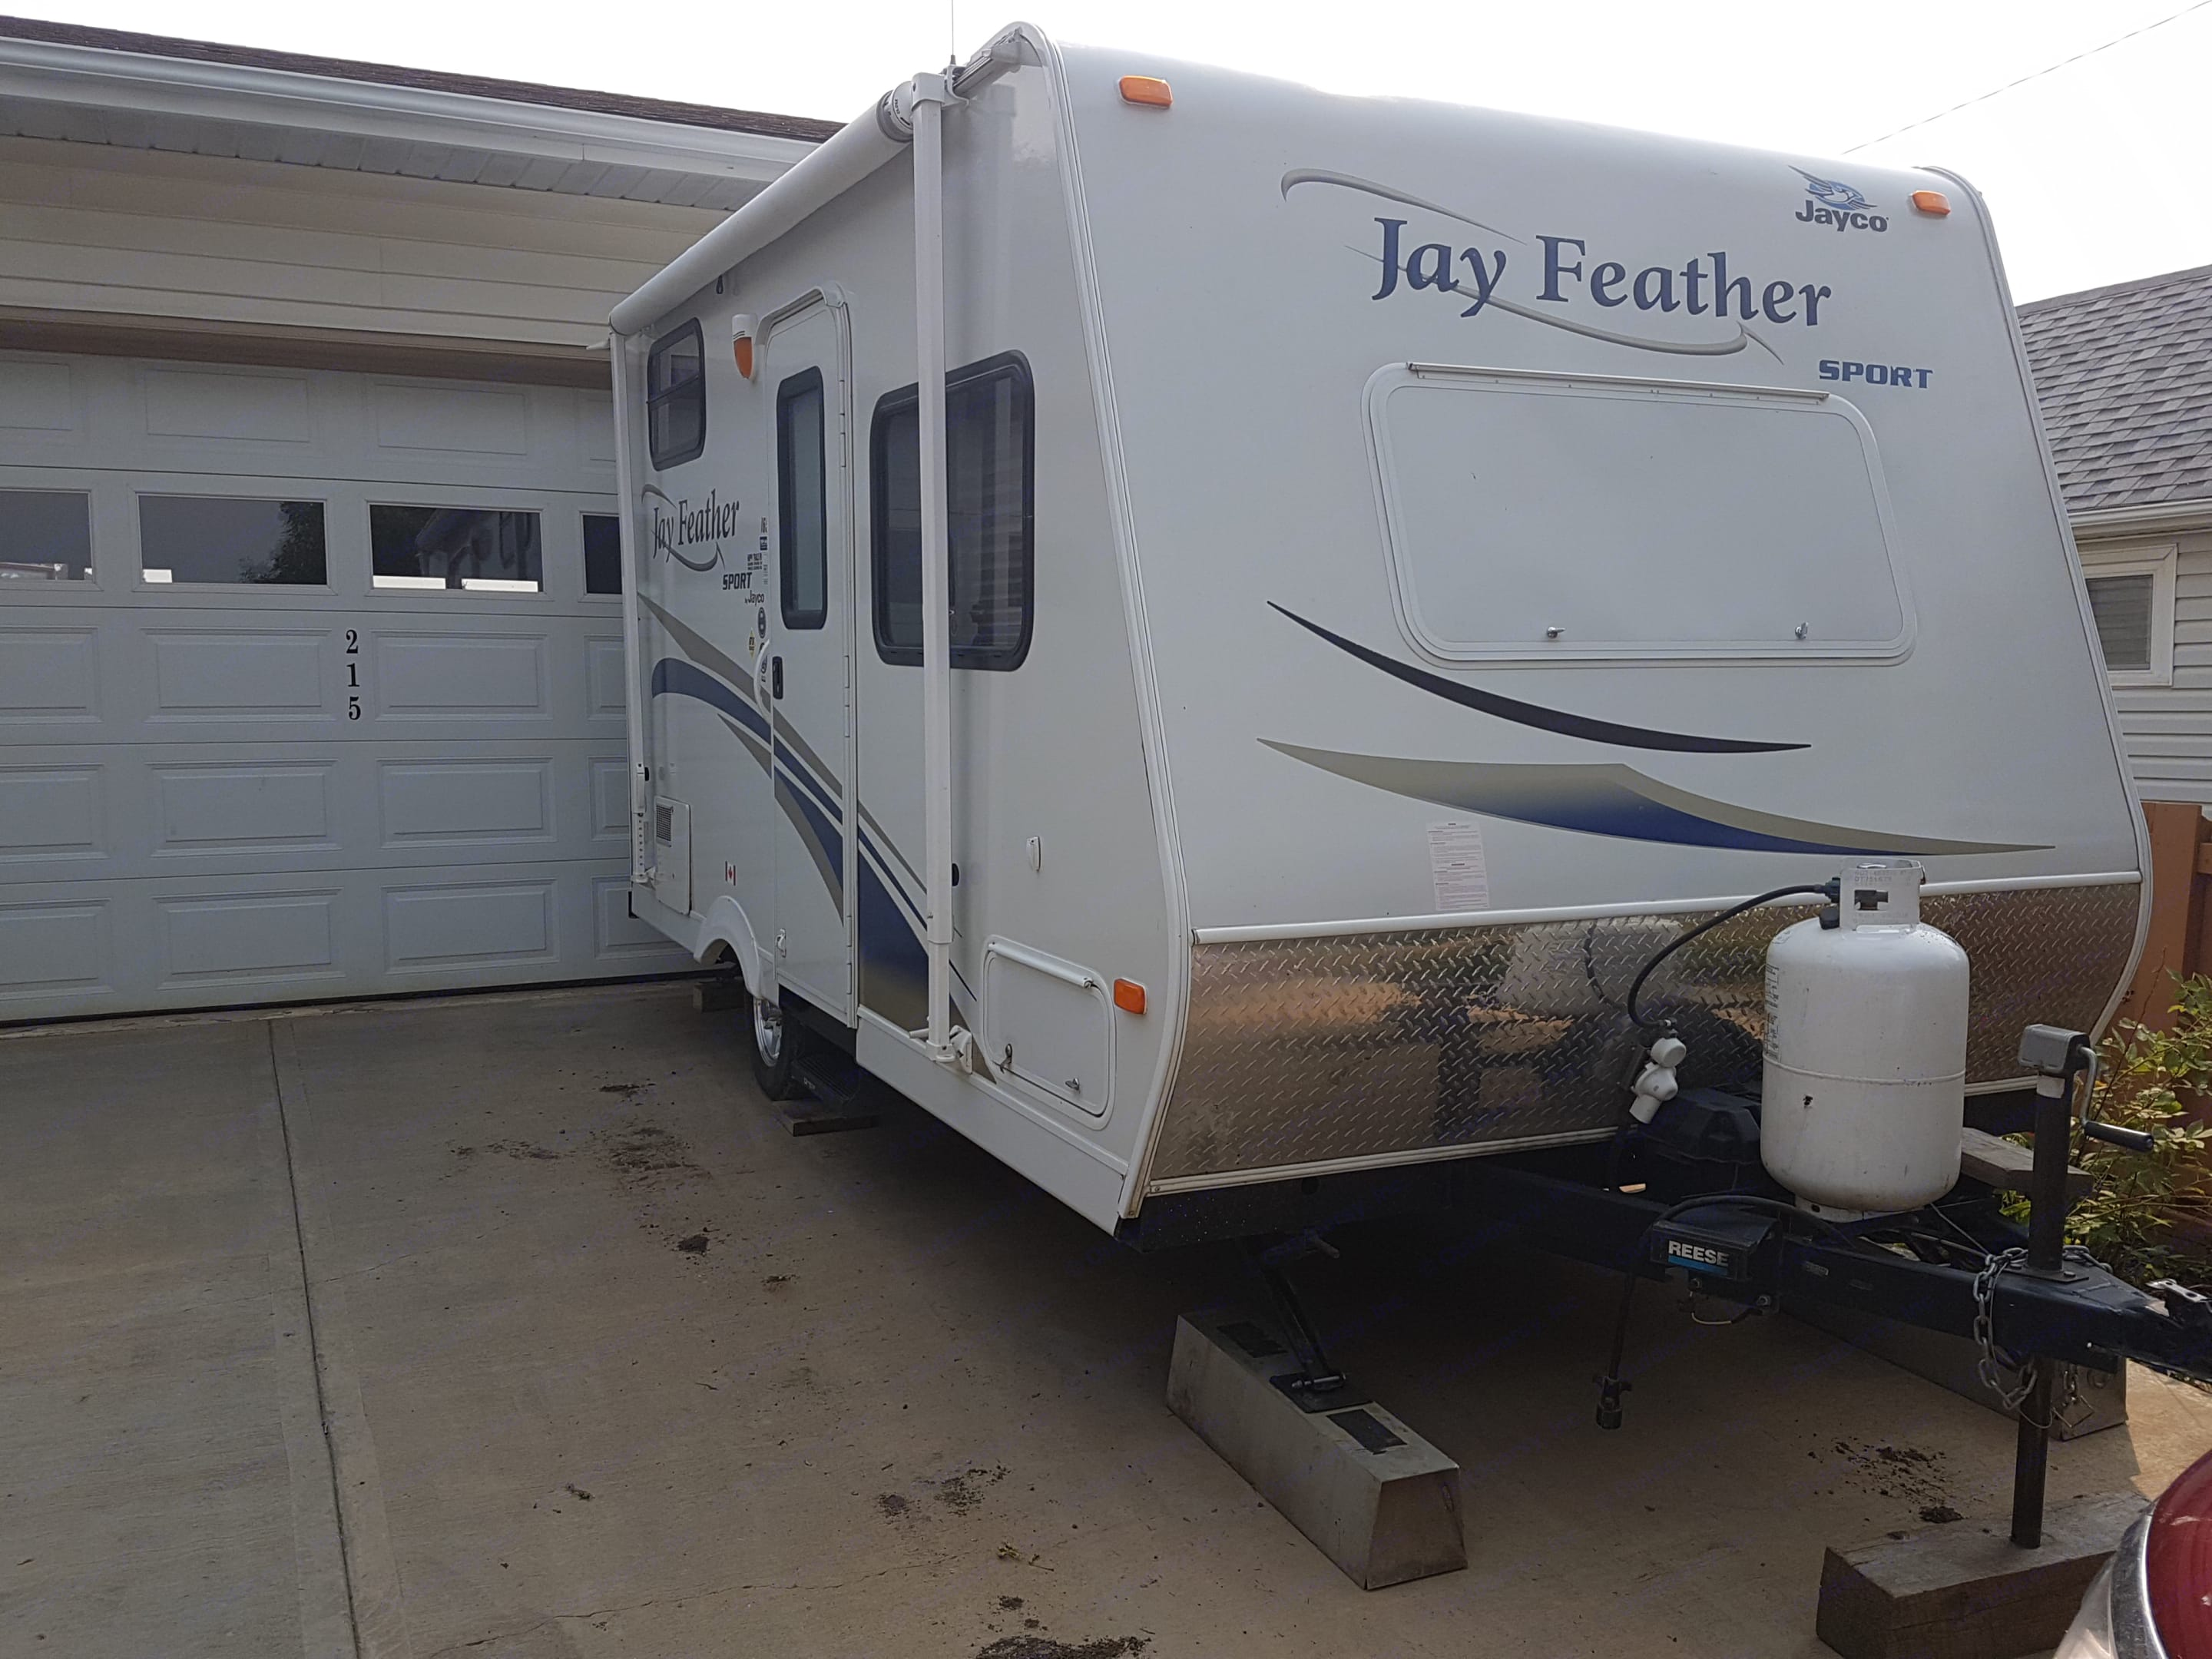 12 foot awning. 30lb propane bottle.. Jayco Jay Feather Sport 165 2011